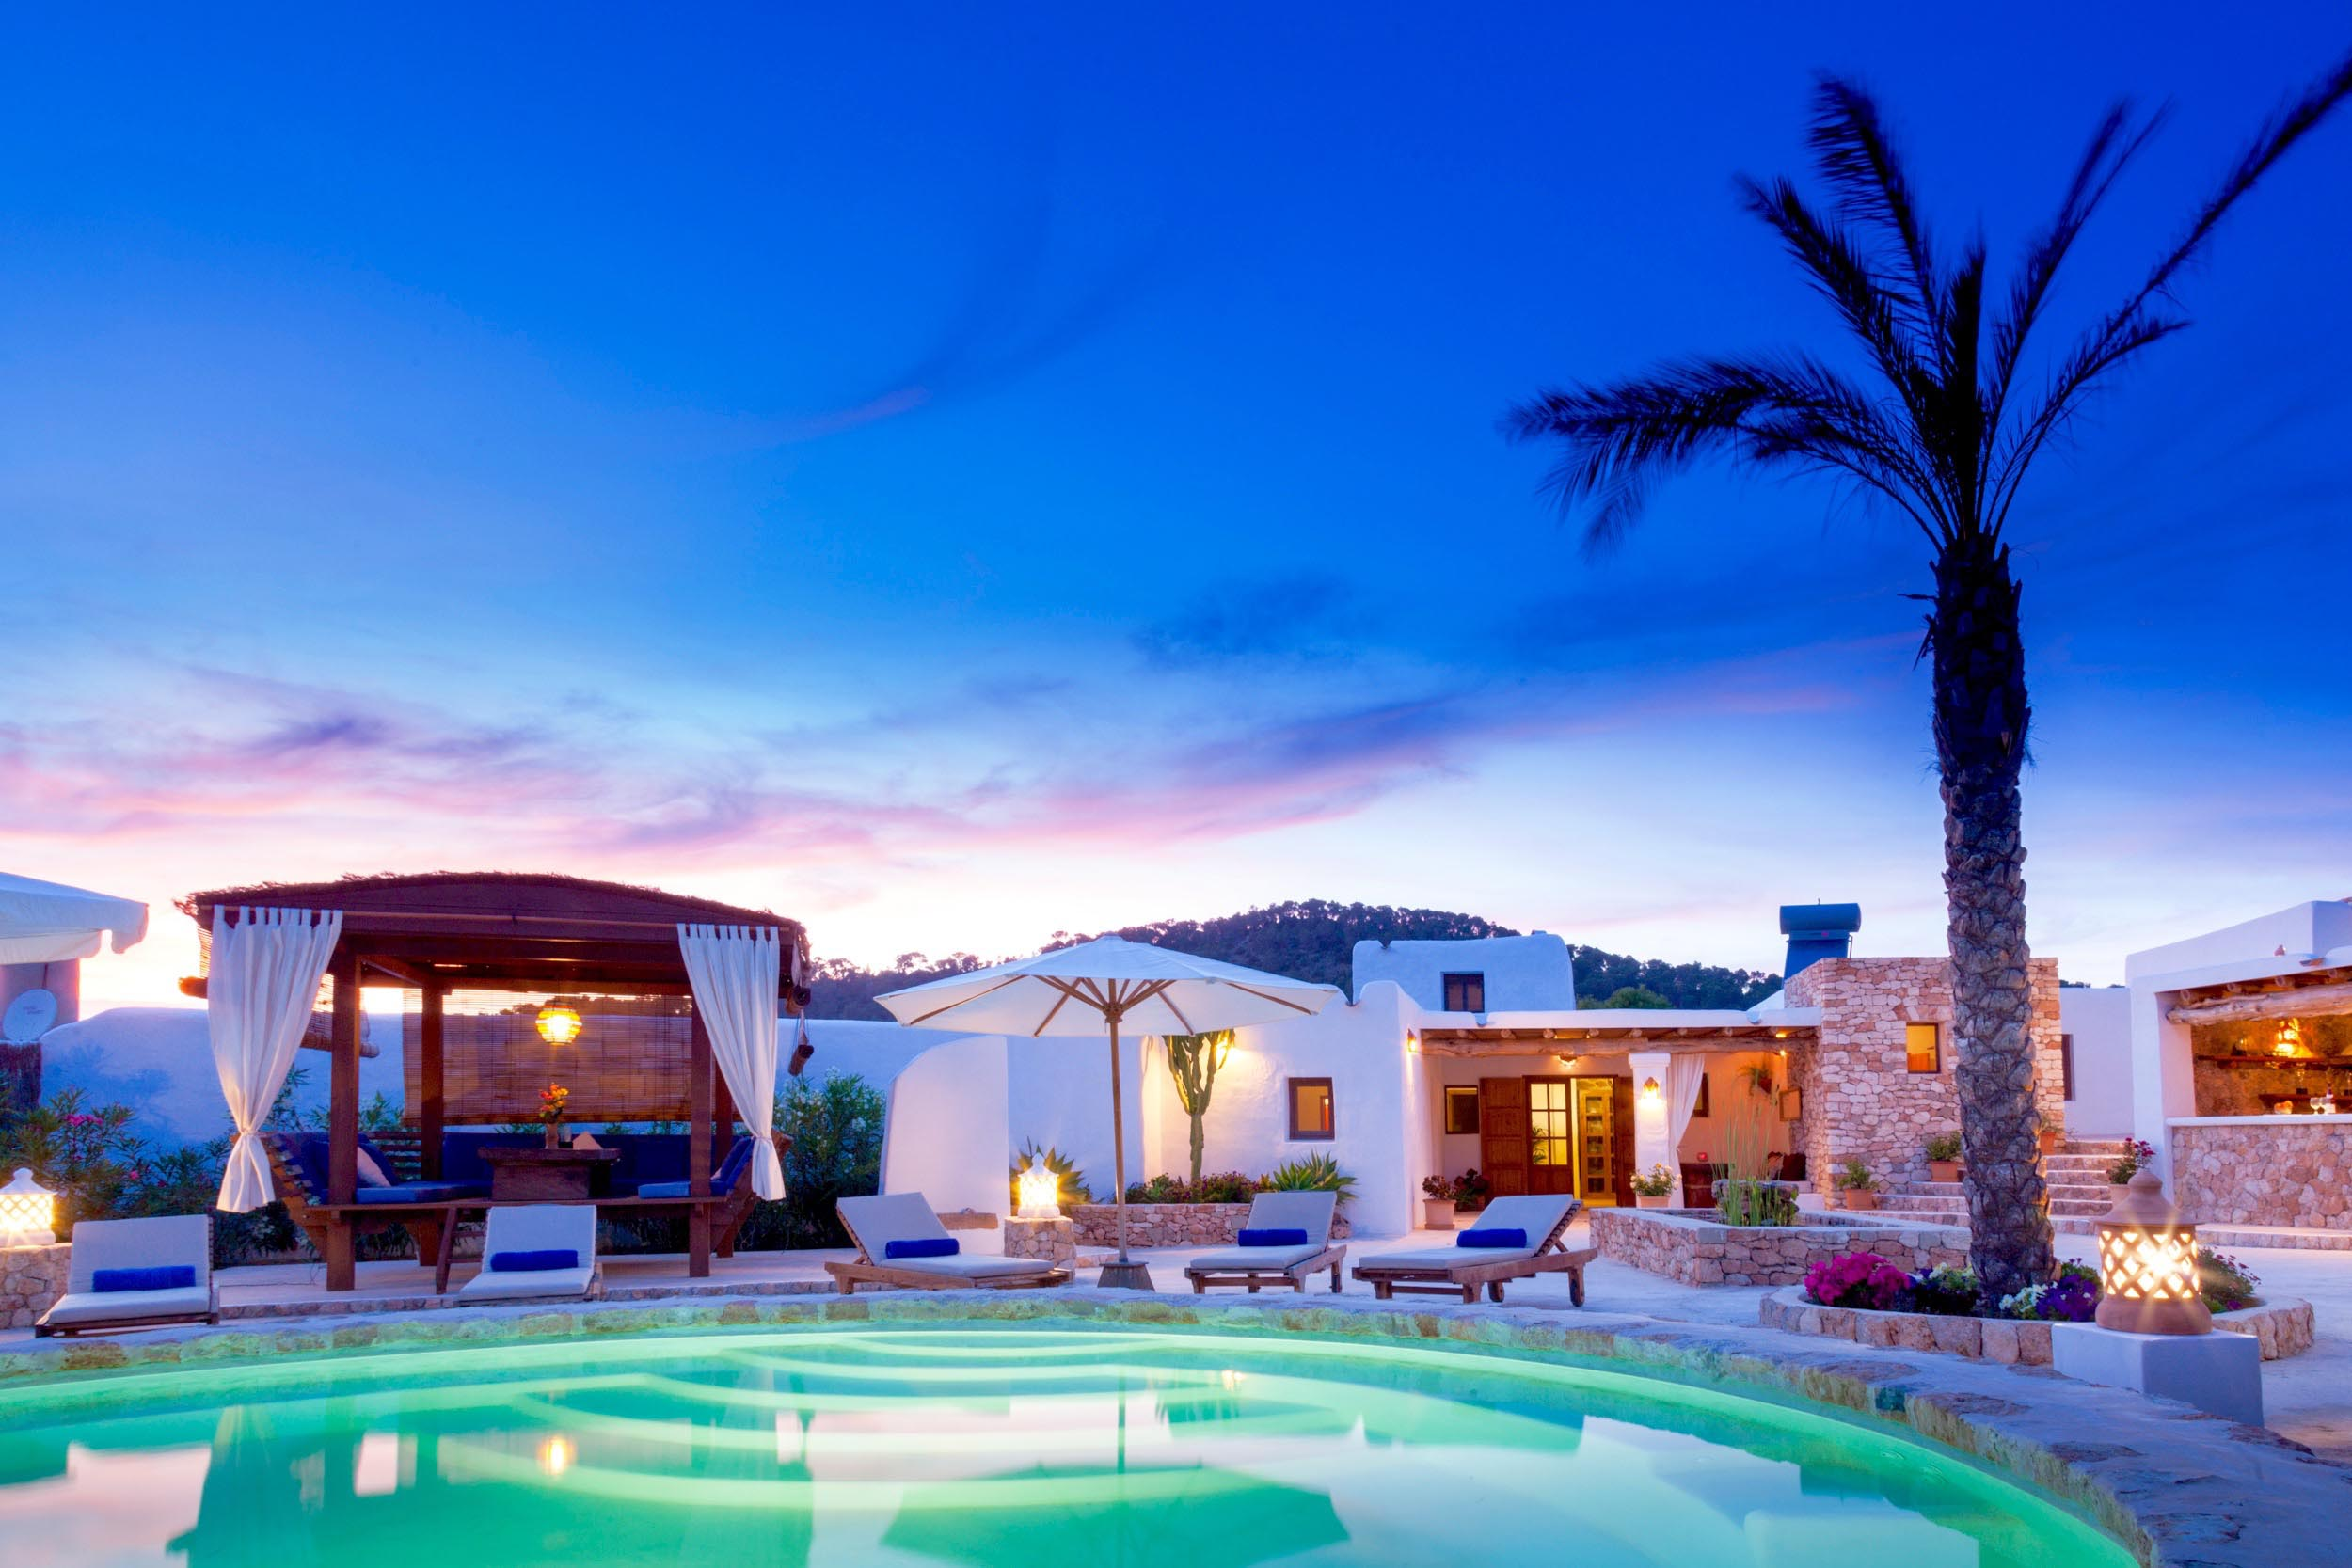 luxury villa rental, Spain, ESPIBI 1807